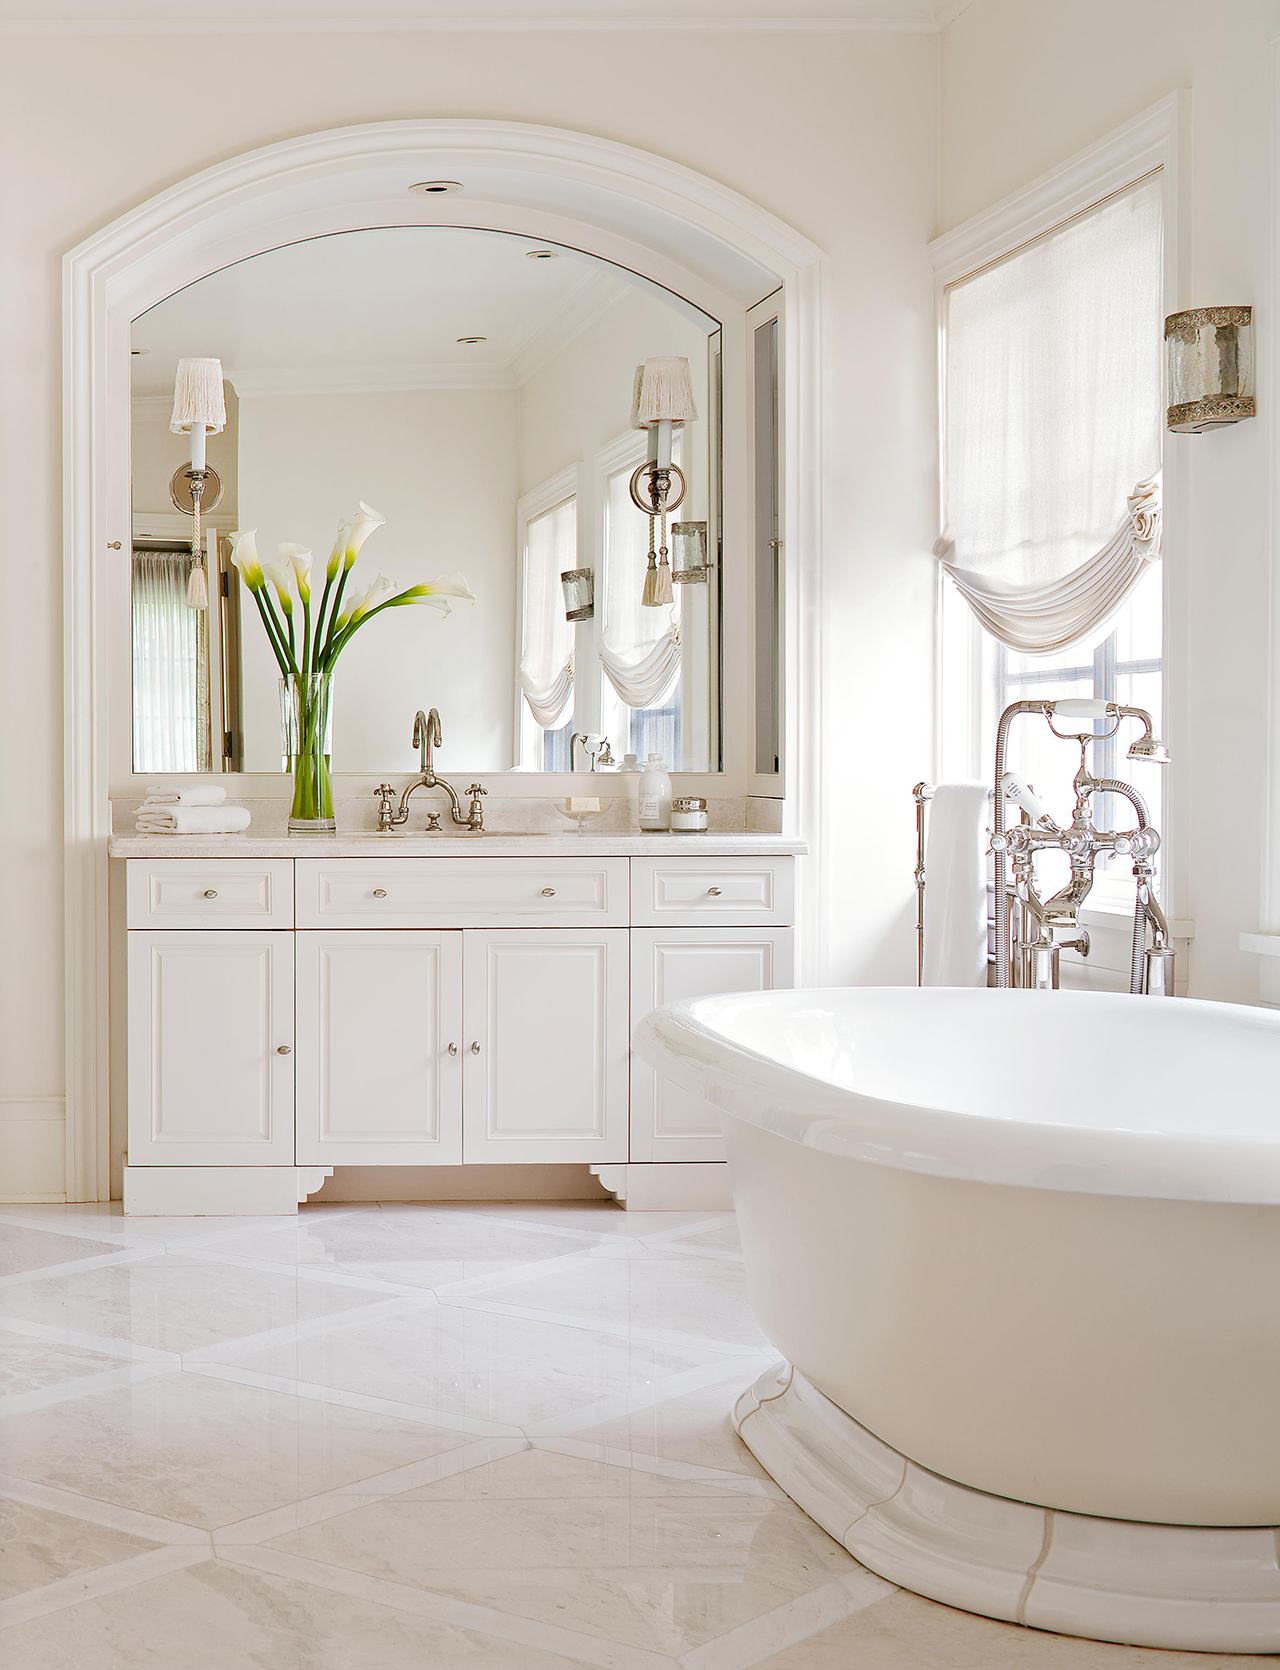 21 White Bathroom Ideas For A Sparkling Space Better Homes Gardens